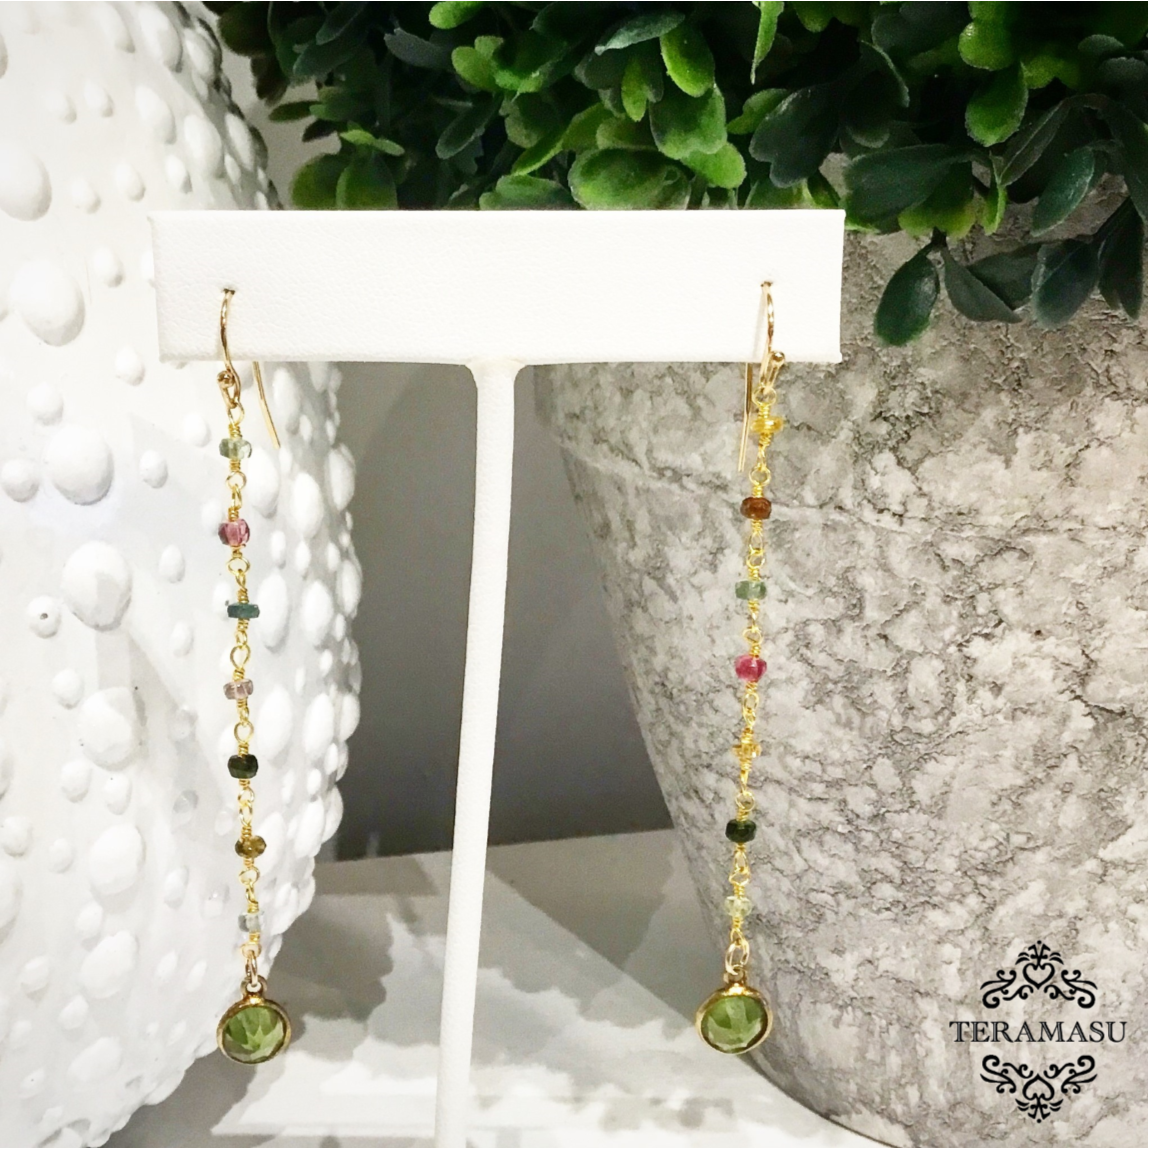 Chic Peek: One-of-a-Kind Handmade Teramasu Tourmaline and Peridot Drop Earrings